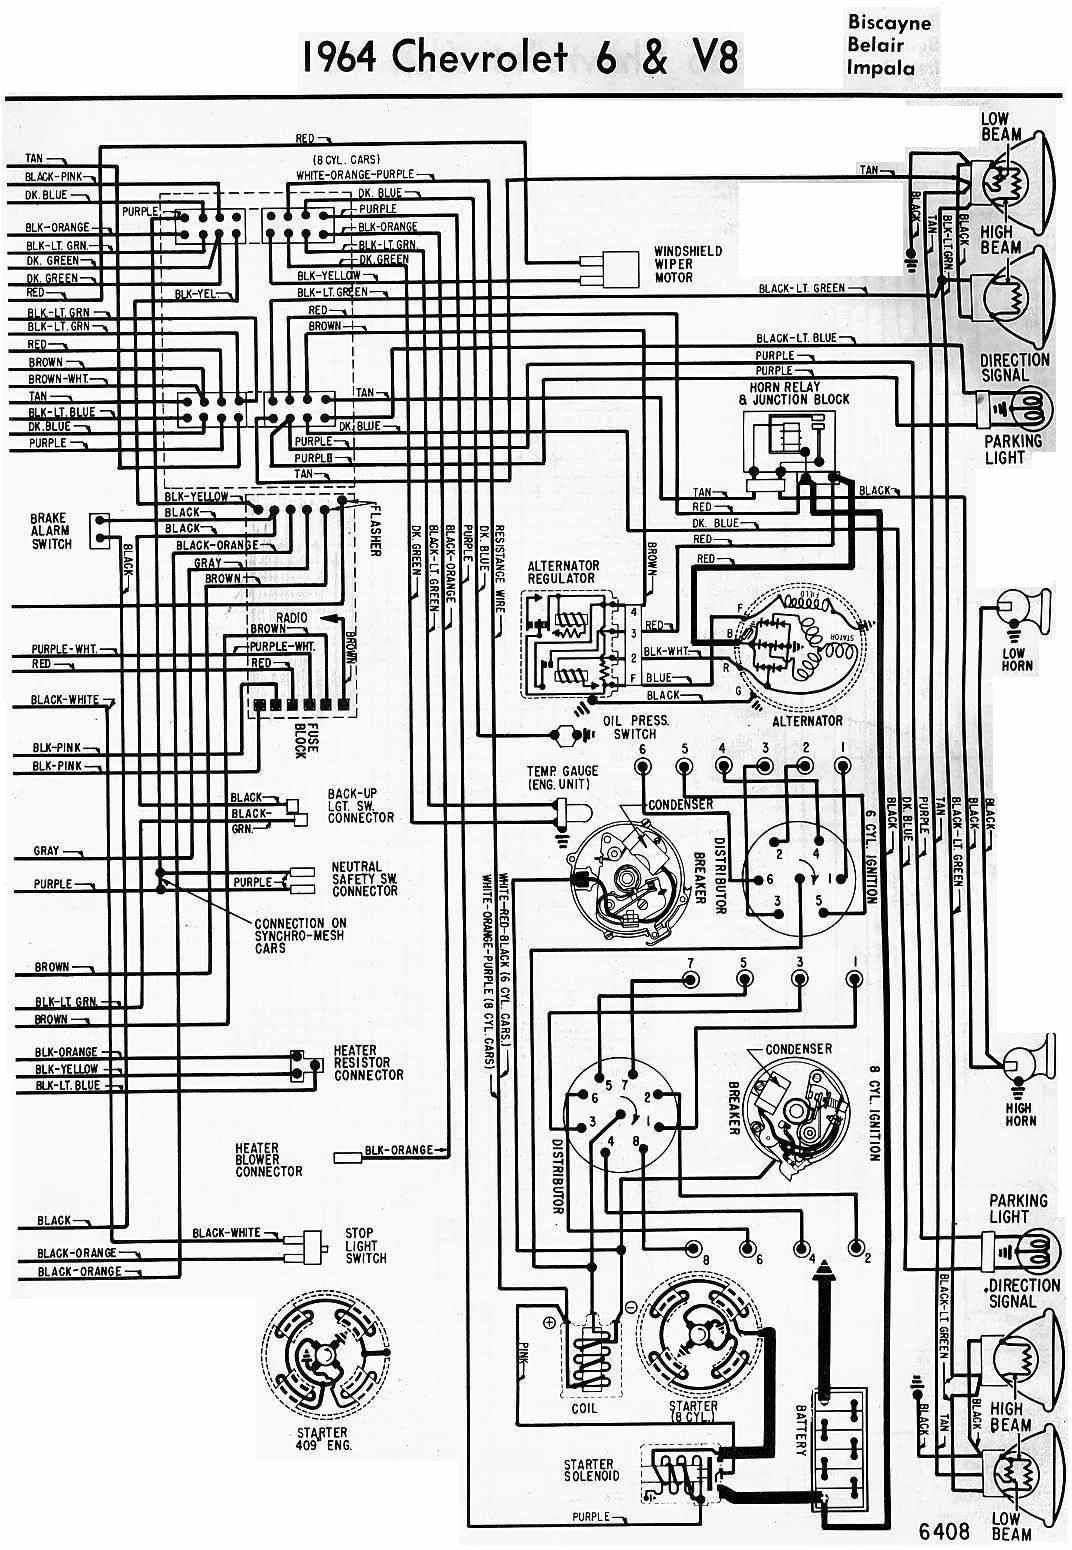 1964 impala ac wiring diagram simple wiring diagrams64 impala wiring diagram wiring diagram todays 1964 impala ss wiring diagram 1964 chevy impala turn